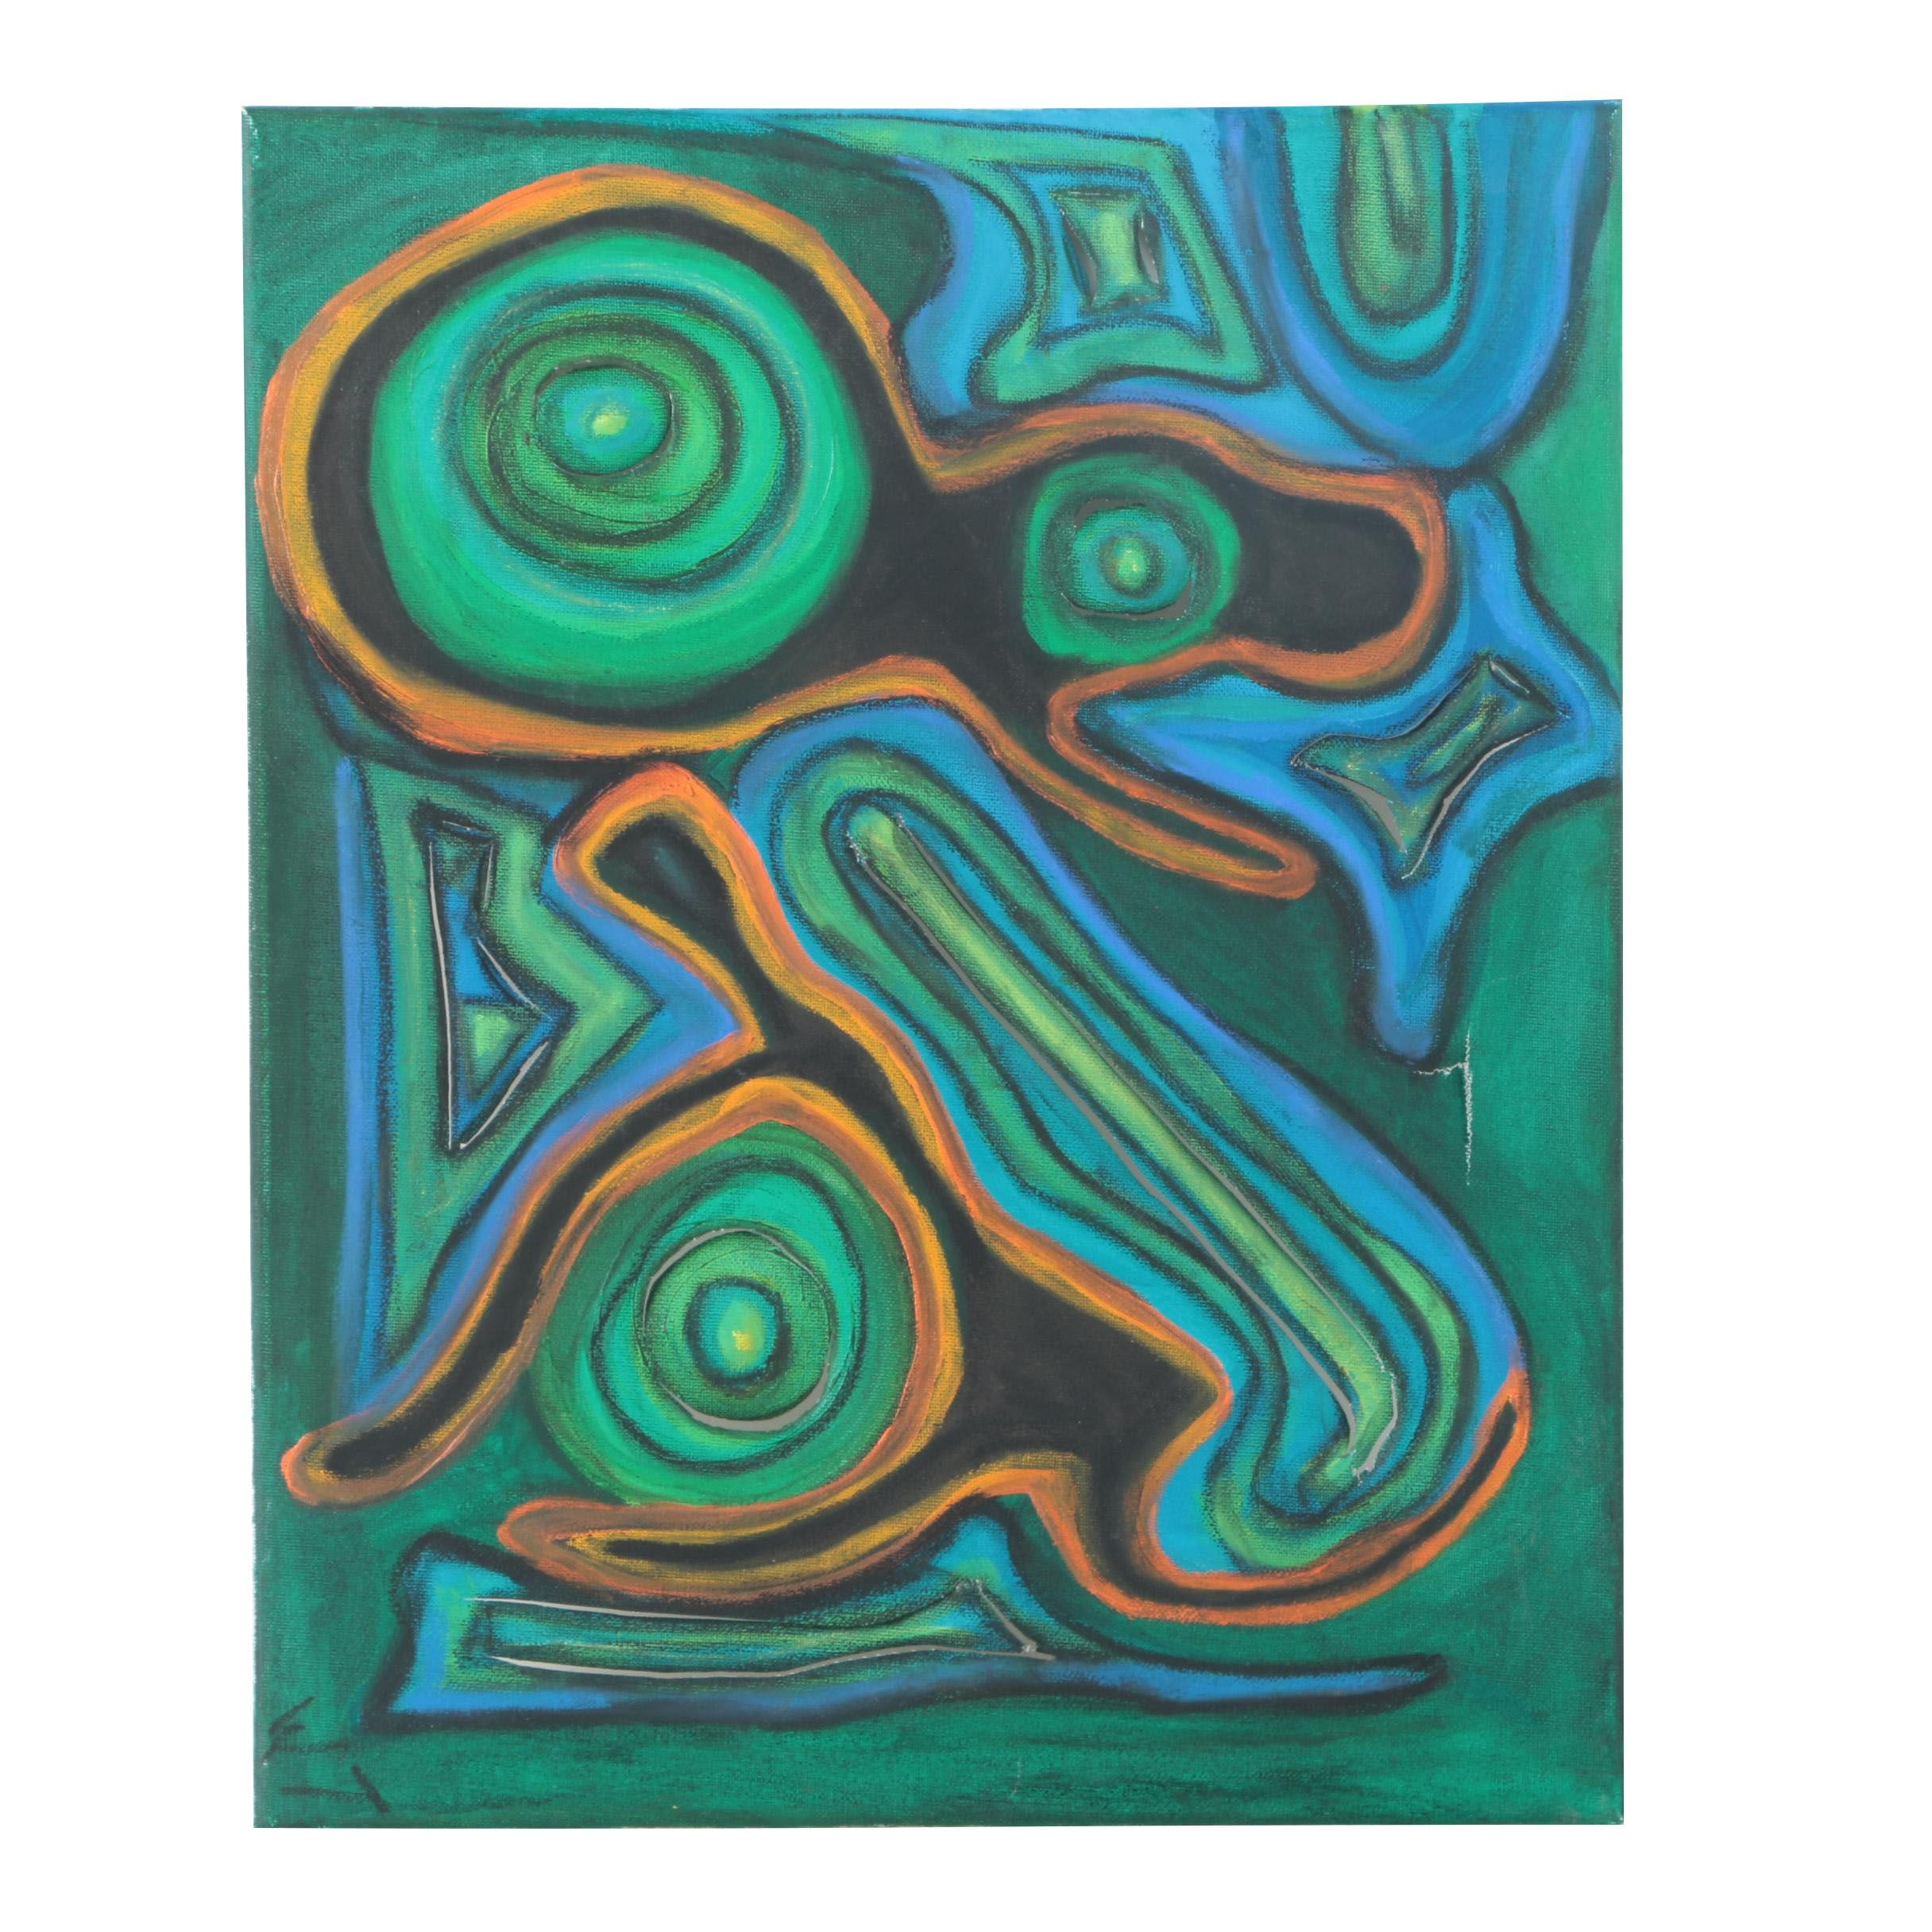 Acrylic Painting on Canvas of Primitive Composition